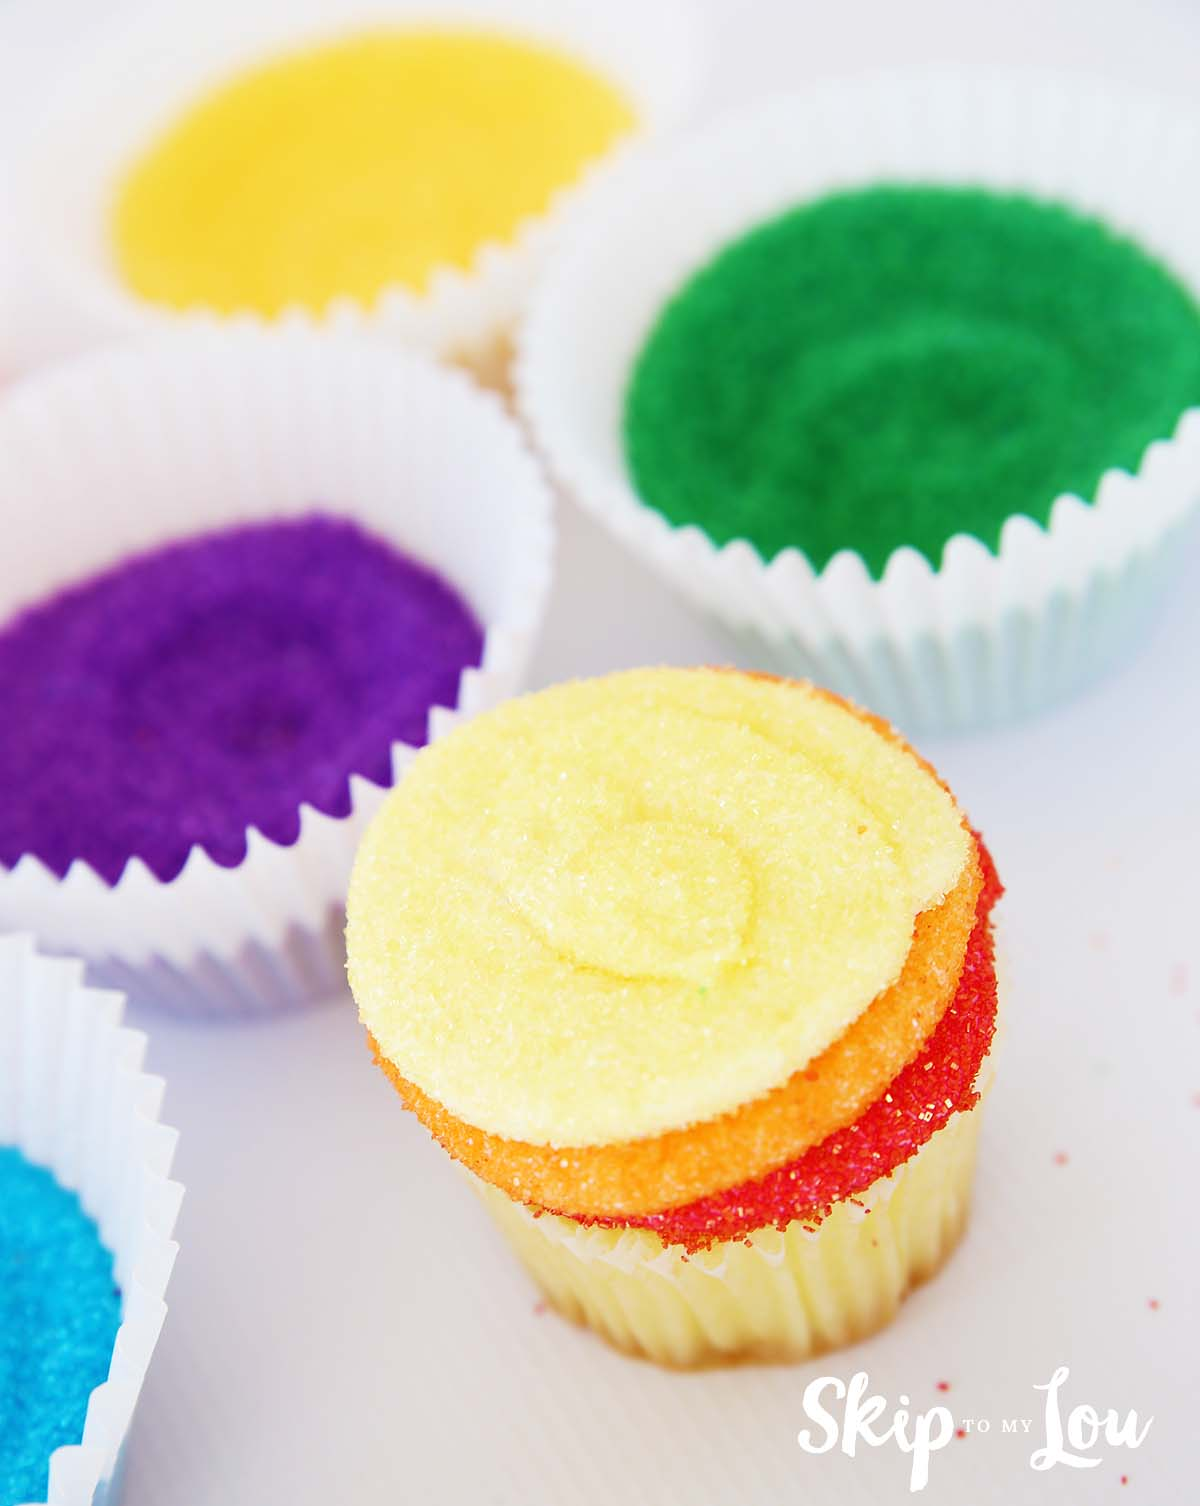 sanding sugar rainbow frosted cupcake with red, orange, and yellow layers